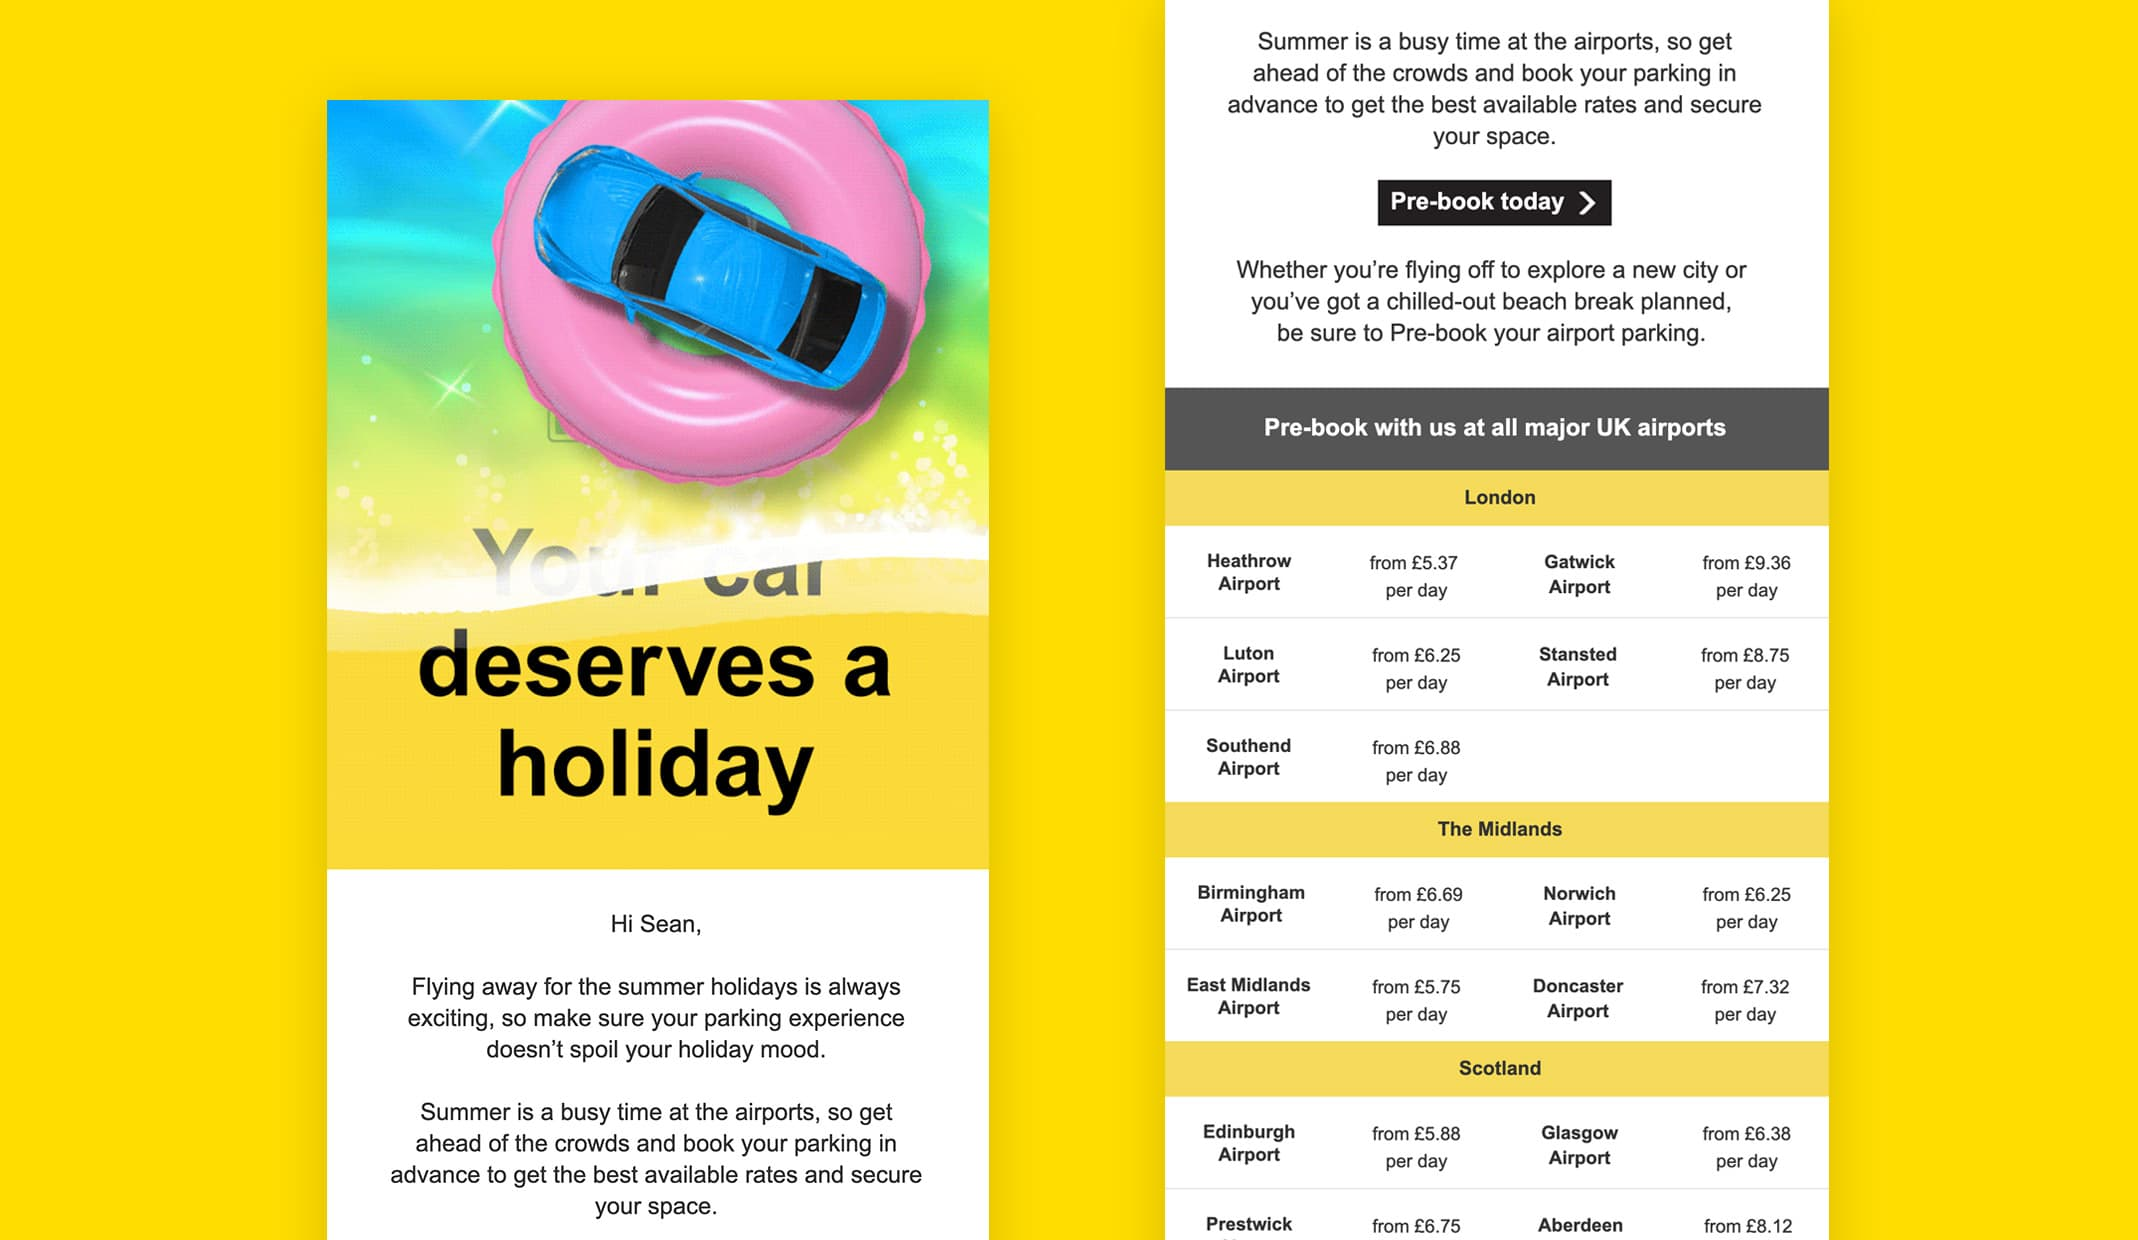 NCP Summer campaign case study